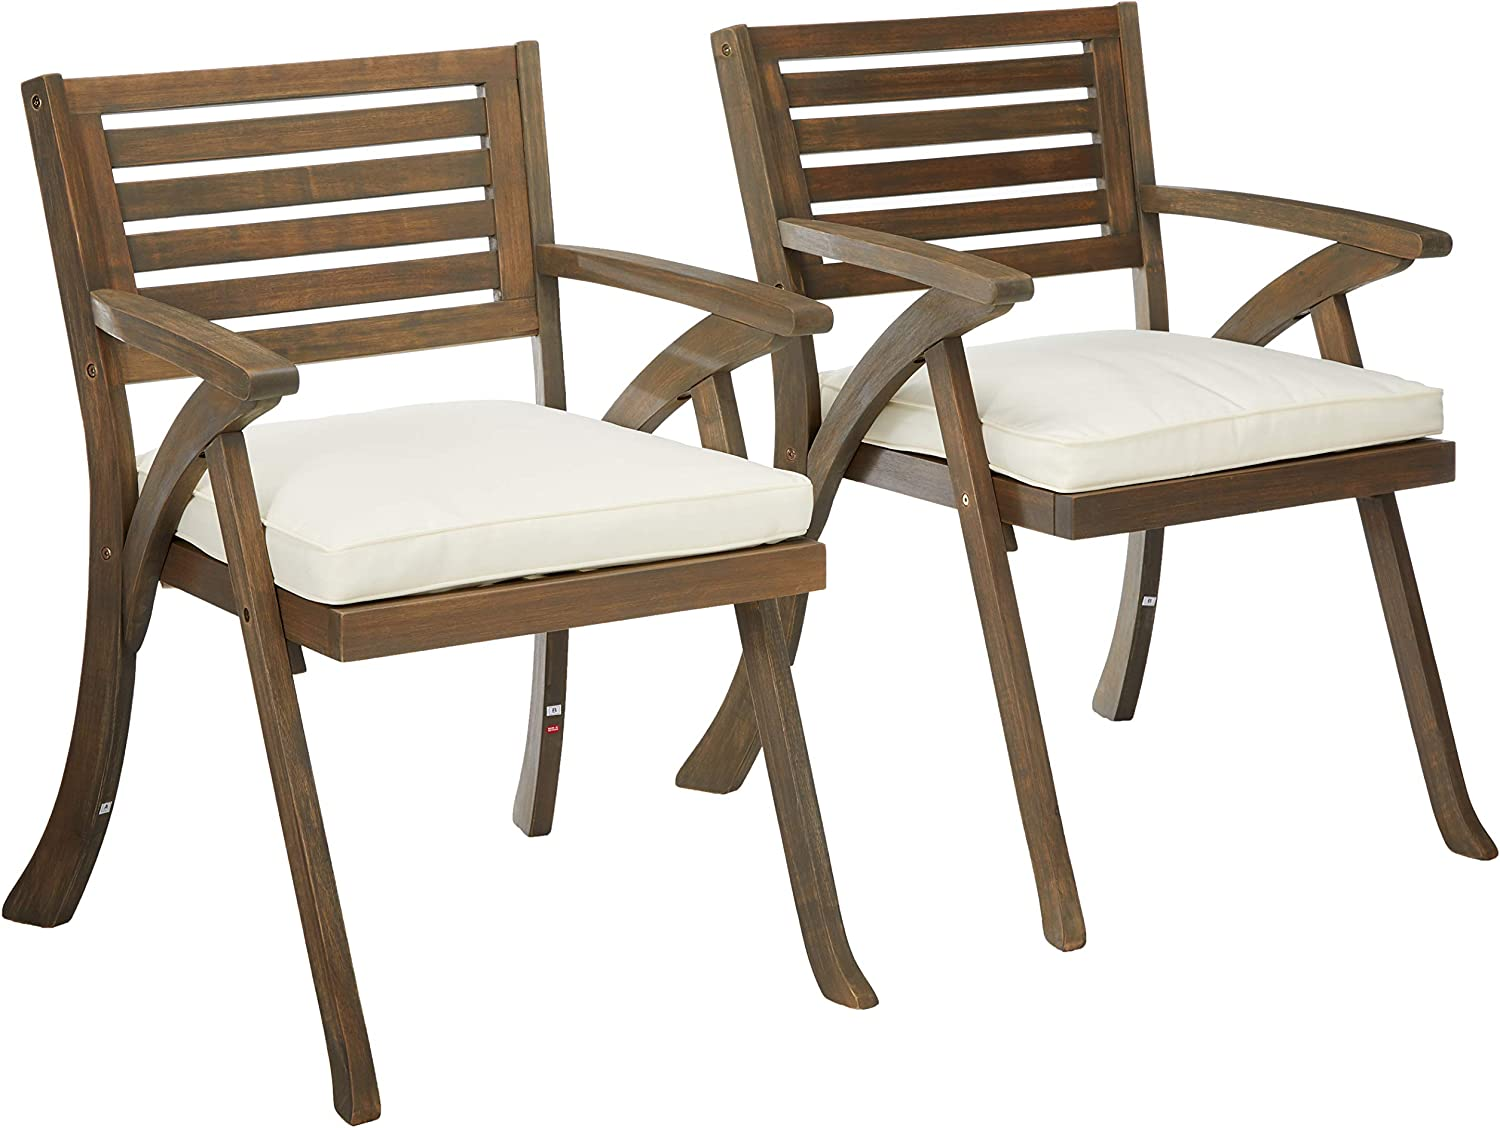 Christopher Knight Home 305765 Helen Outdoor Acacia Wood Dining Chair, Gray and Crème : Garden & Outdoor